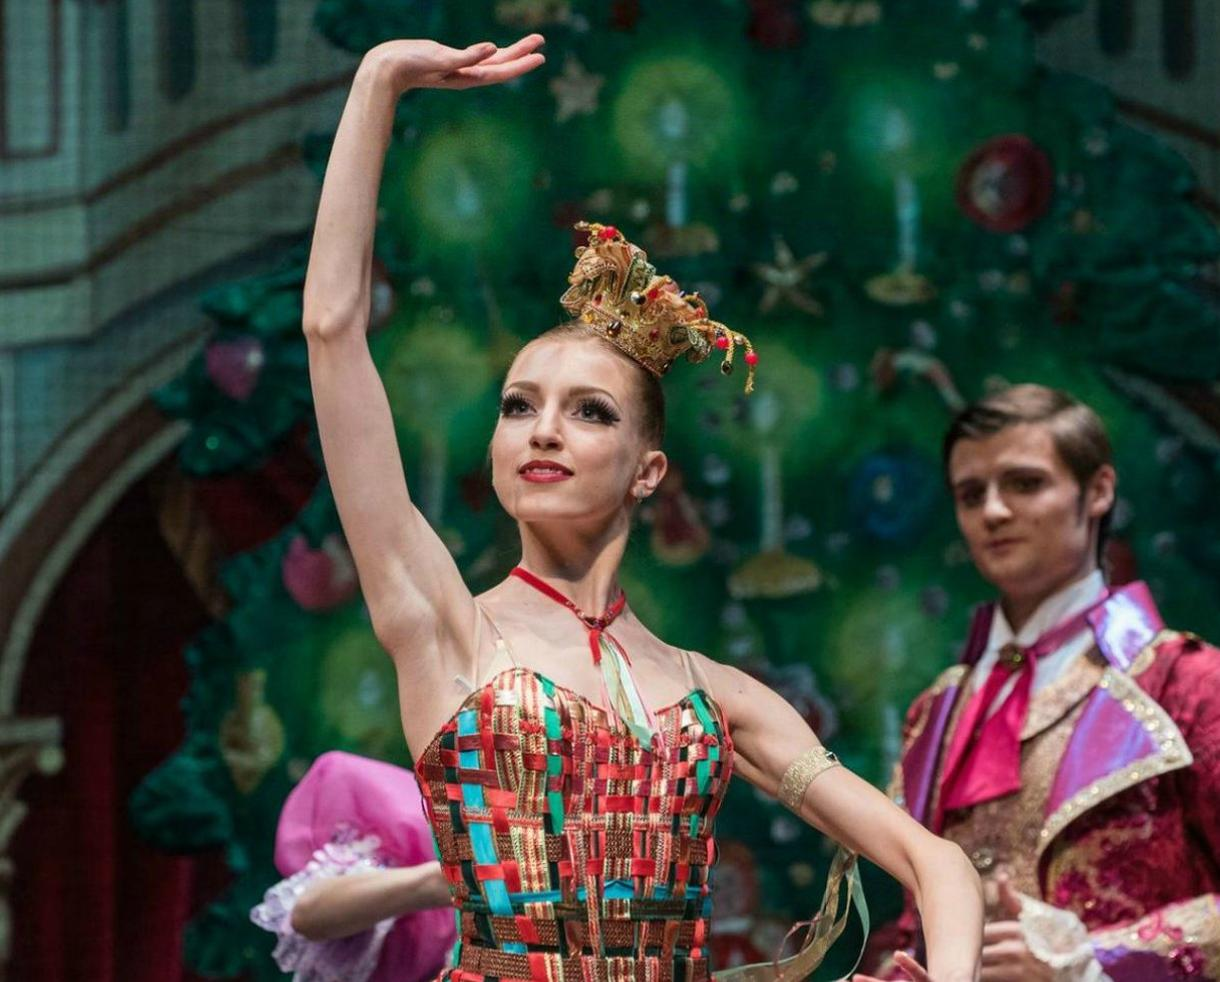 The Moscow Ballet's Great Russian Nutcracker at The Pullo Family Performing Arts Center